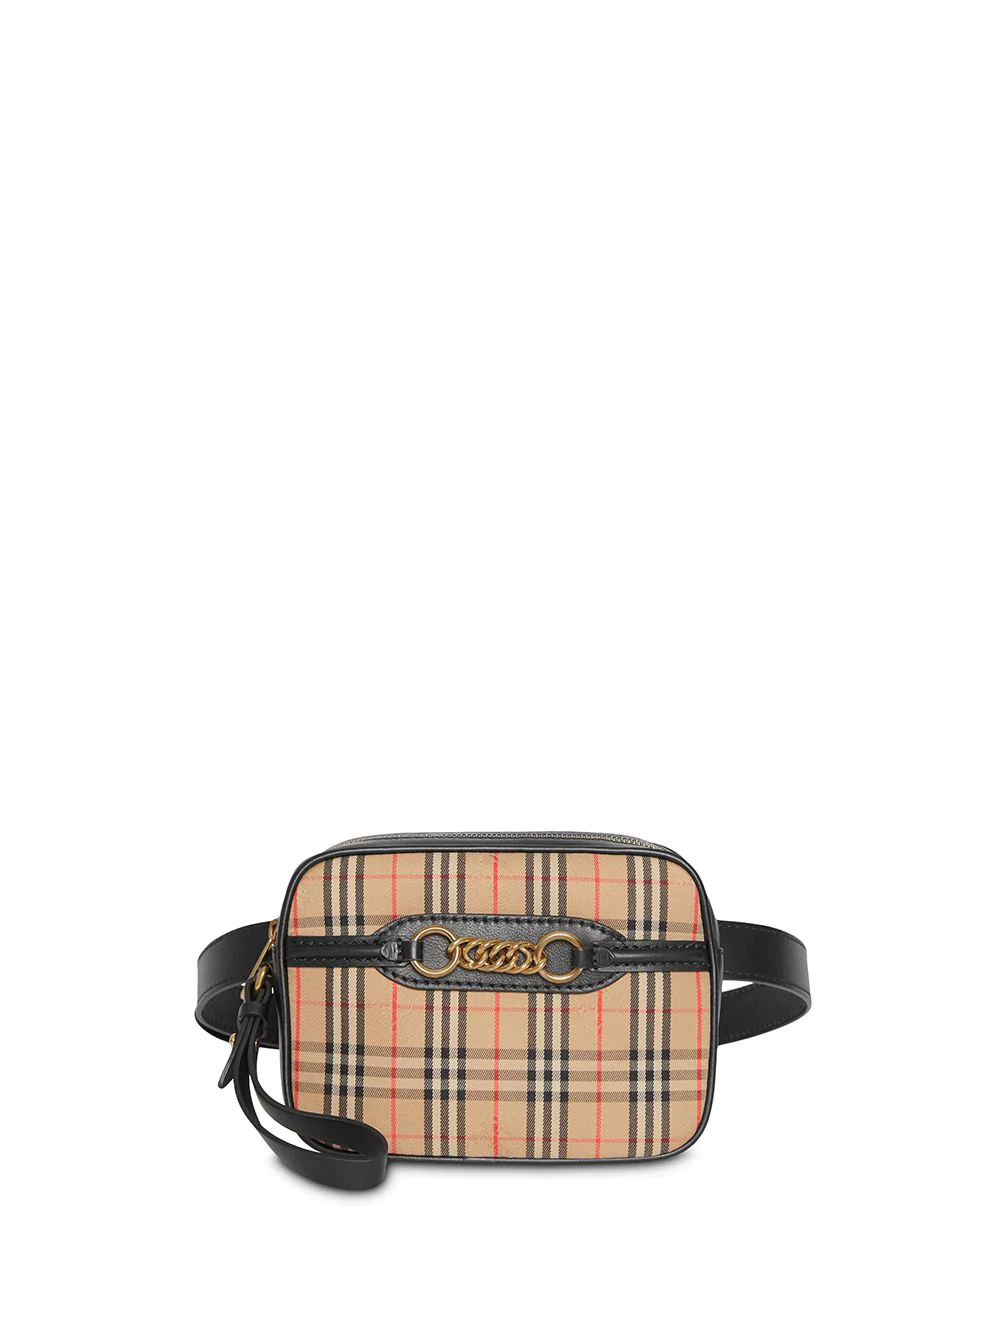 c6e0d4c310 Burberry The 1983 Check Link Bum Bag With Leather Trim In Black ...